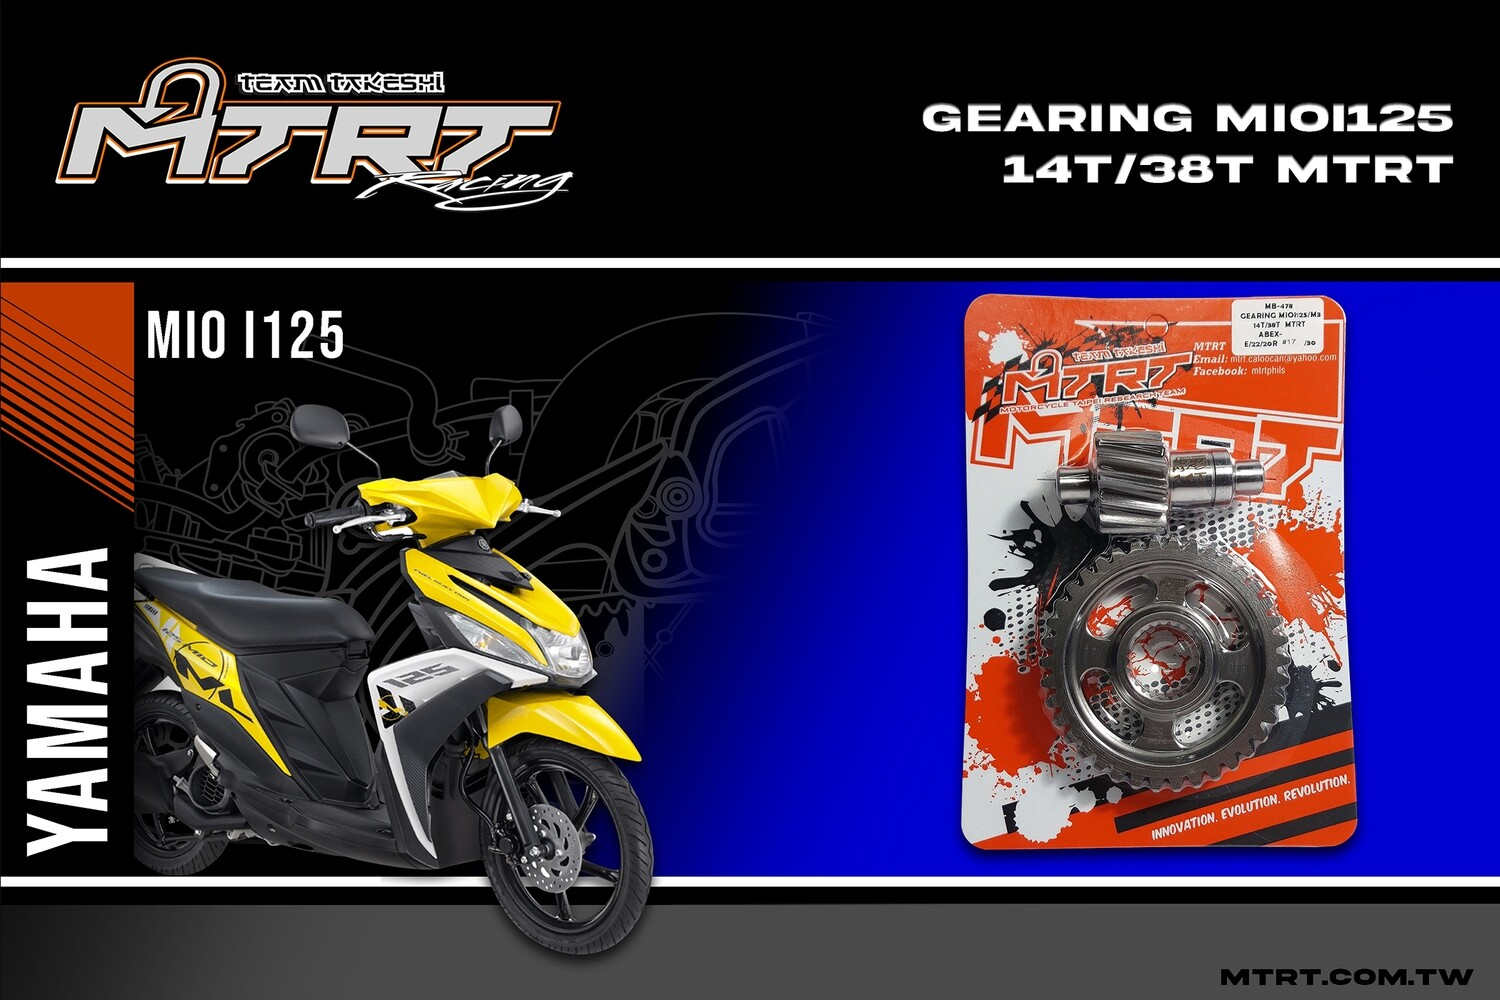 MTRT GEARING MIOi125-M3 14T-38T